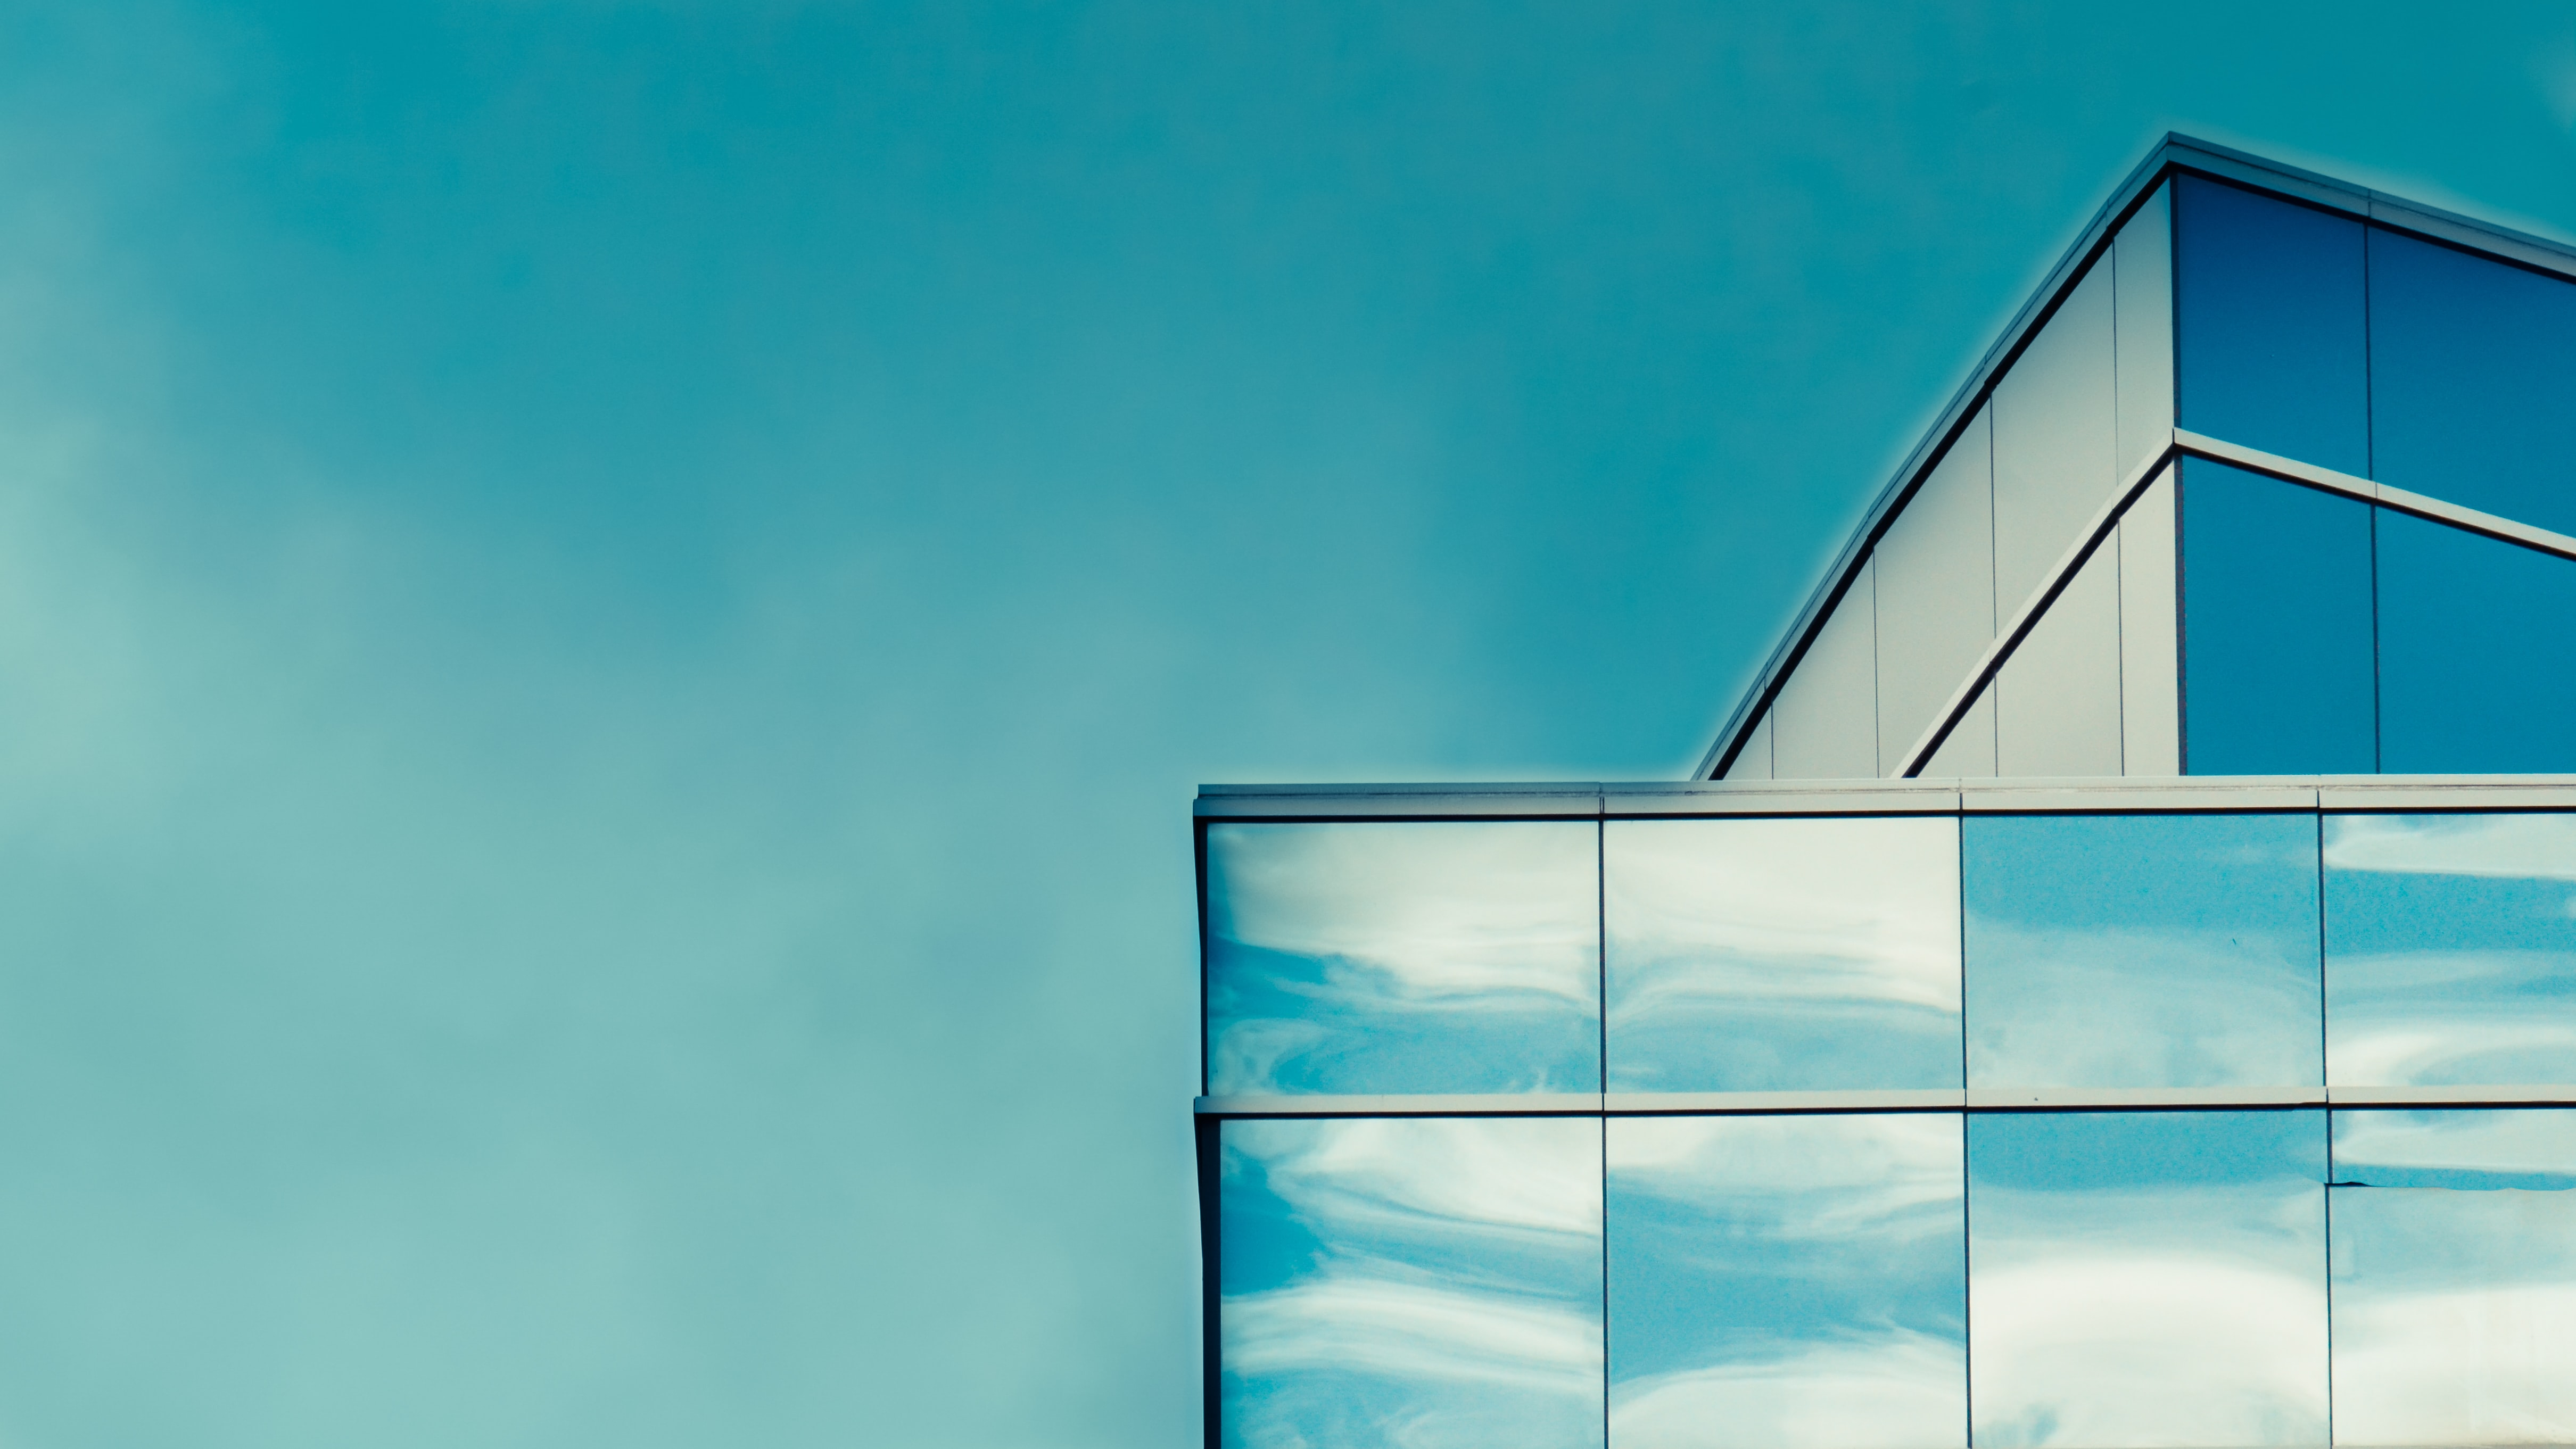 The edge of a rooftop of a building with a glass facade in Orlando